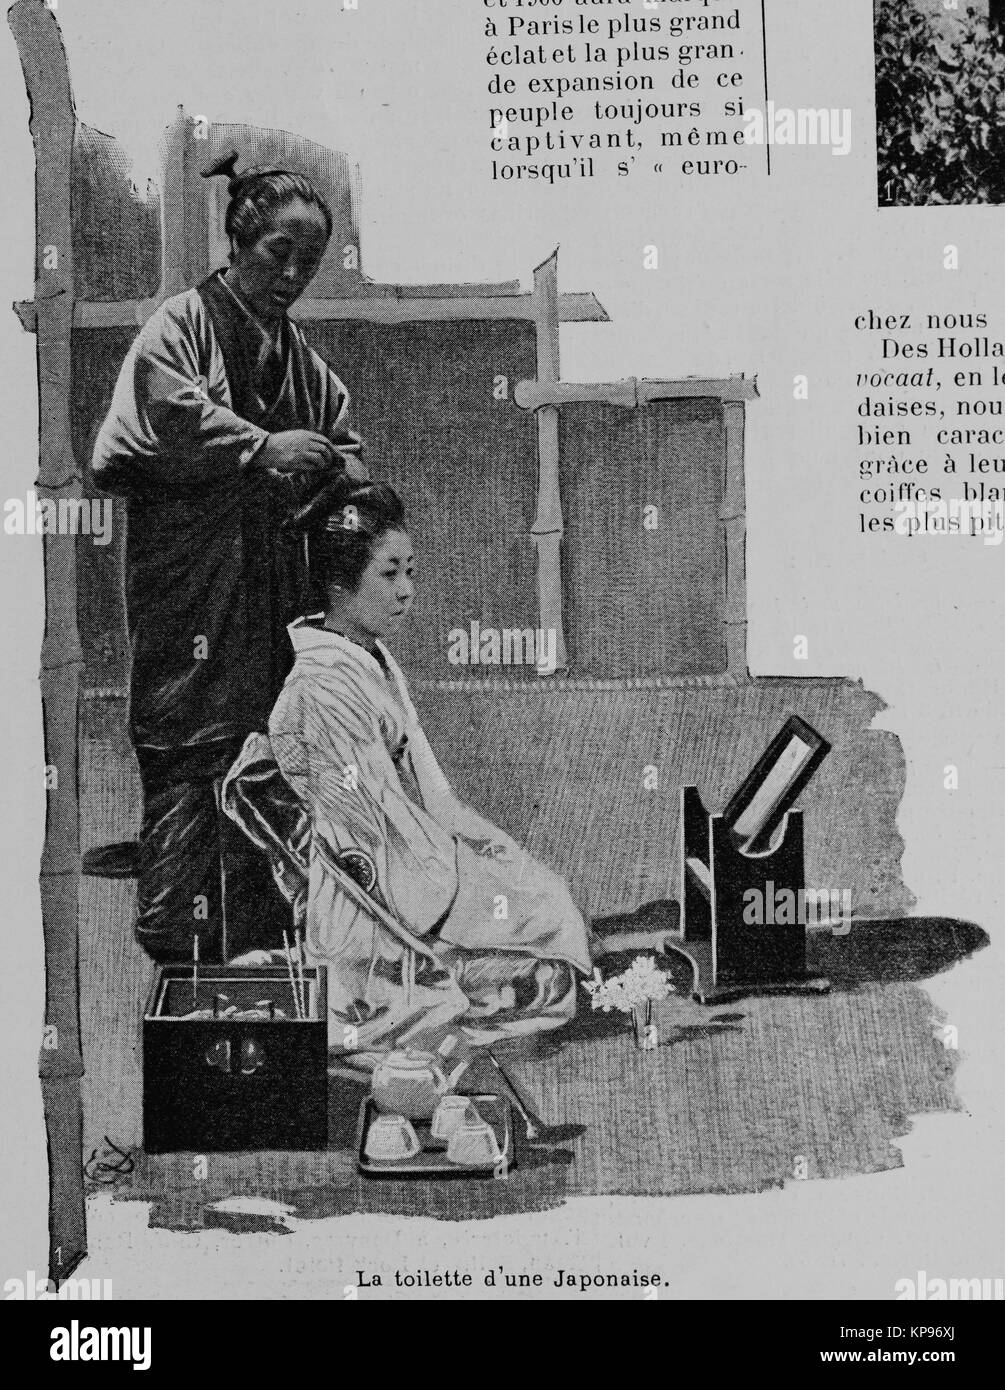 Japanese women's toilet, Women of the Universal Exhibition 1900 in Paris, Picture from the French weekly newspaper - Stock Image